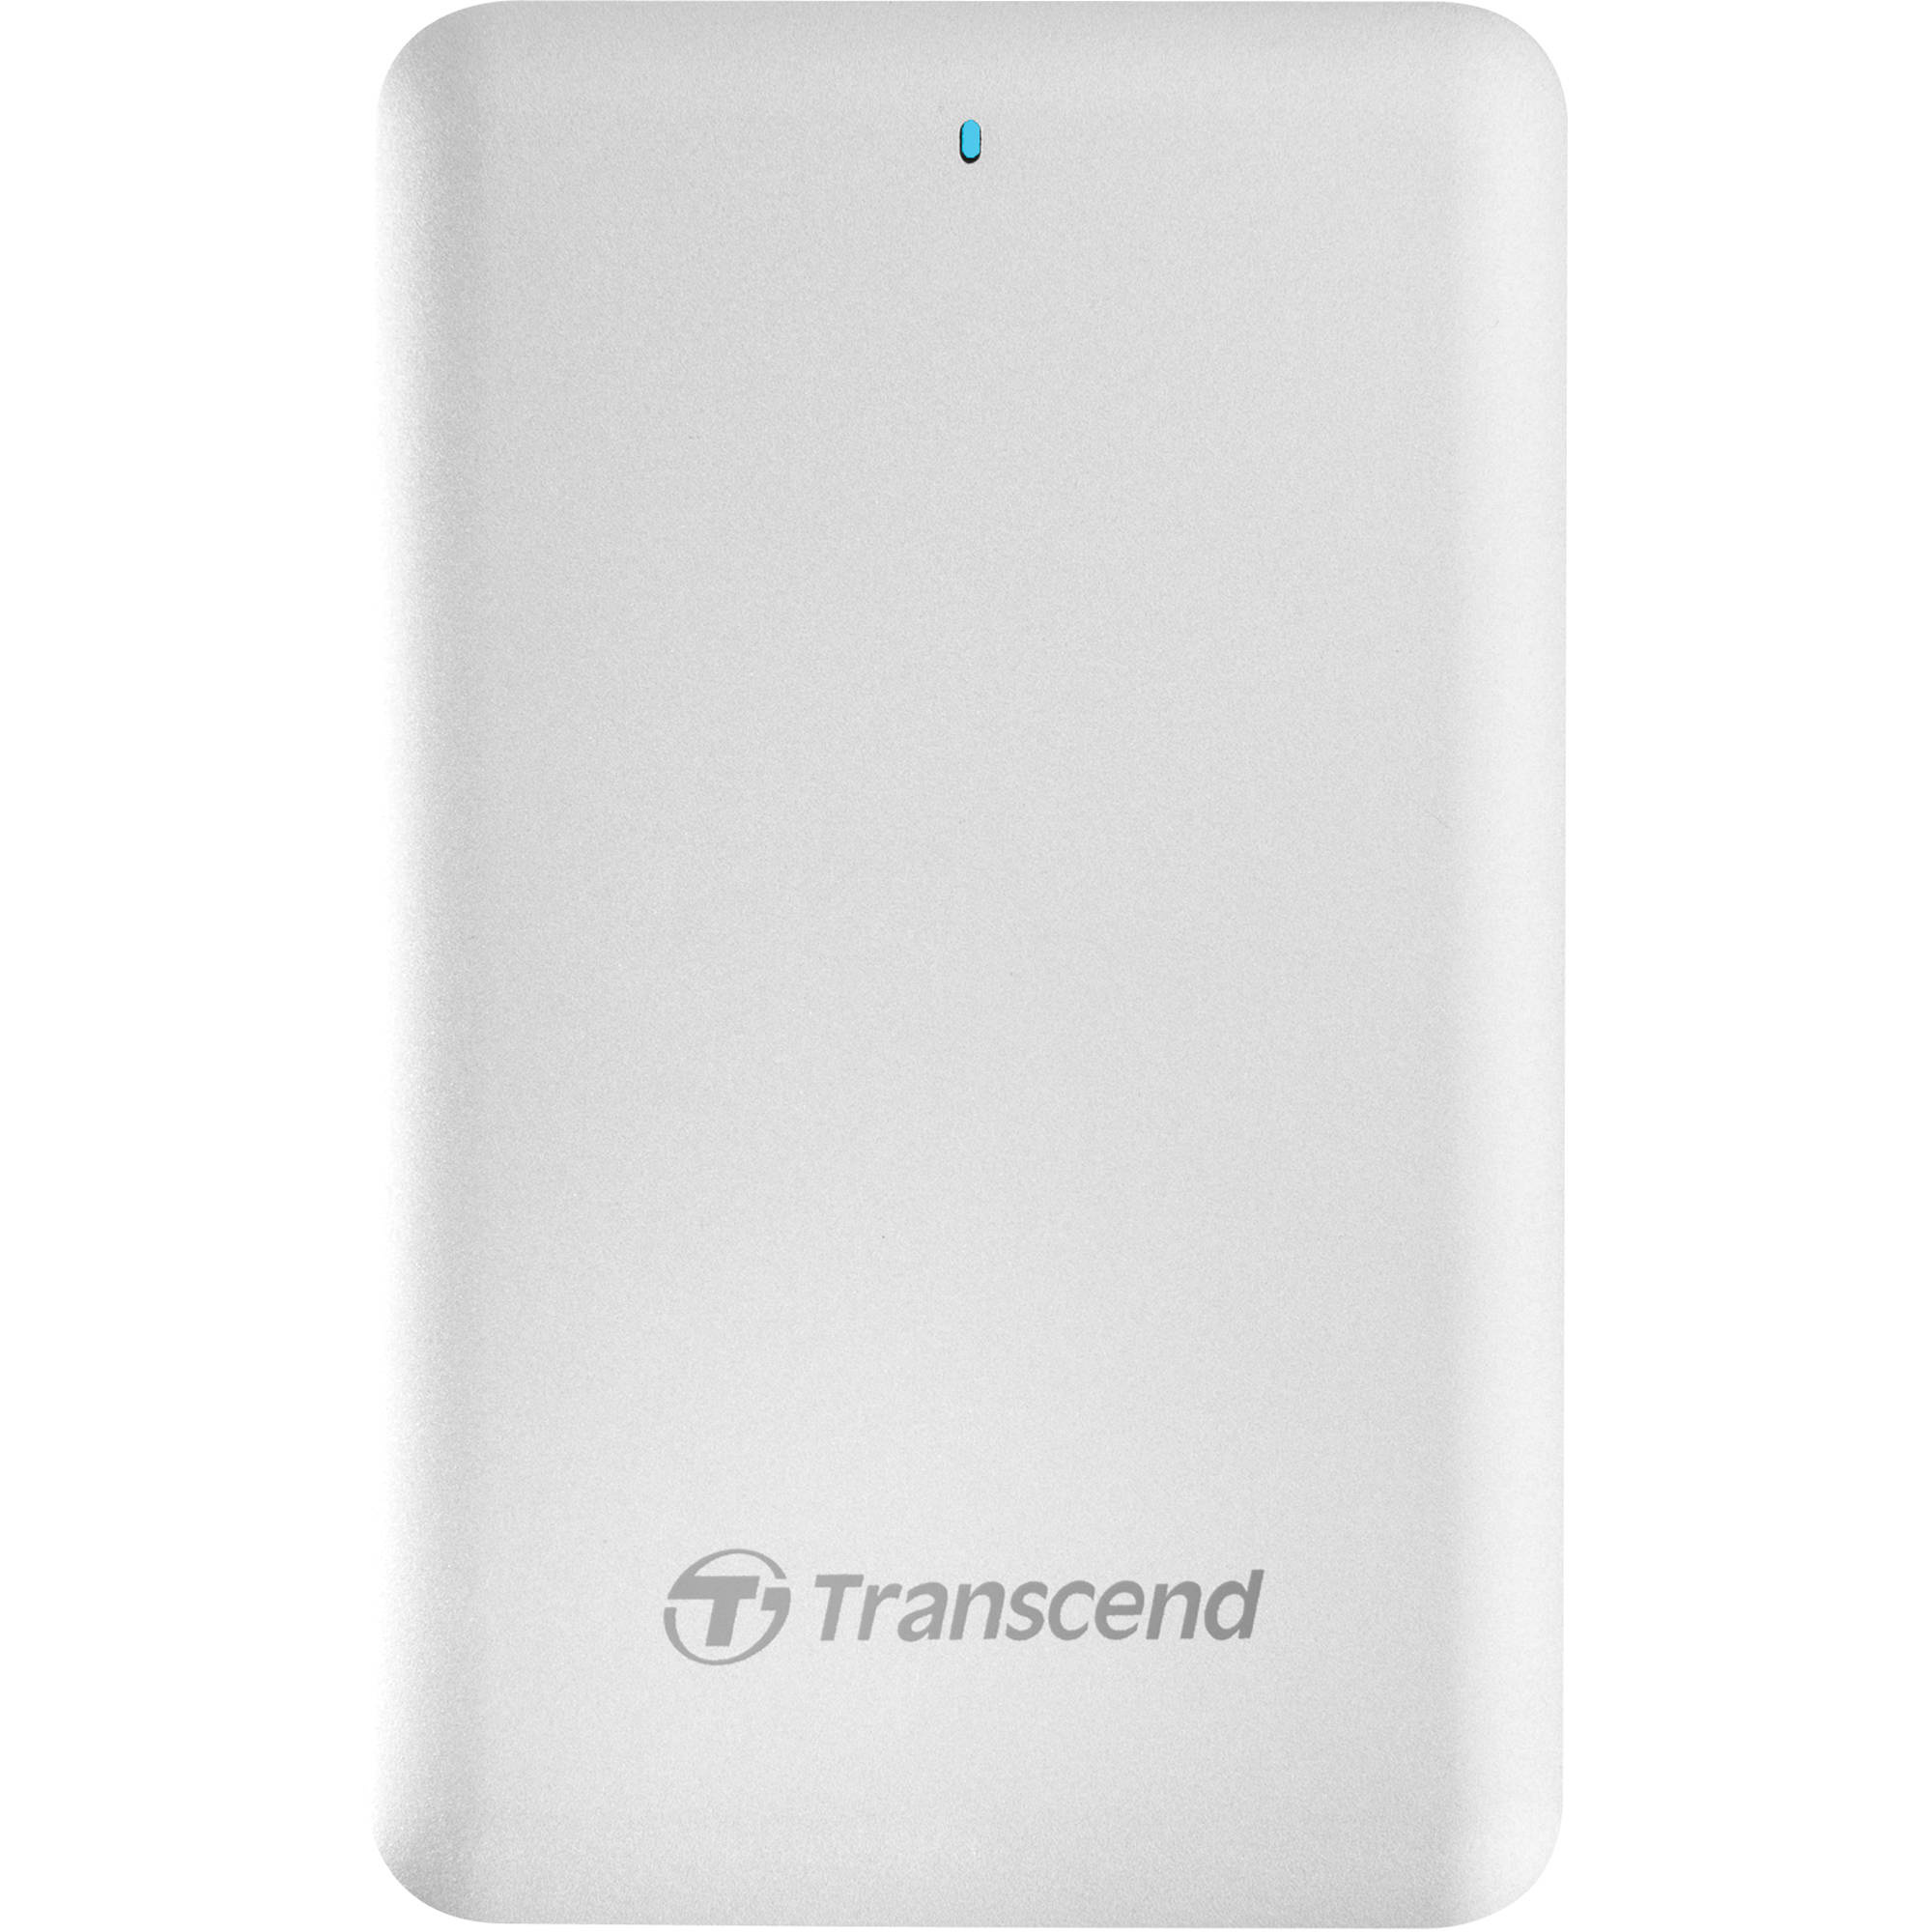 Transcend 512GB StoreJet 500 Portable Solid State Drive for Mac